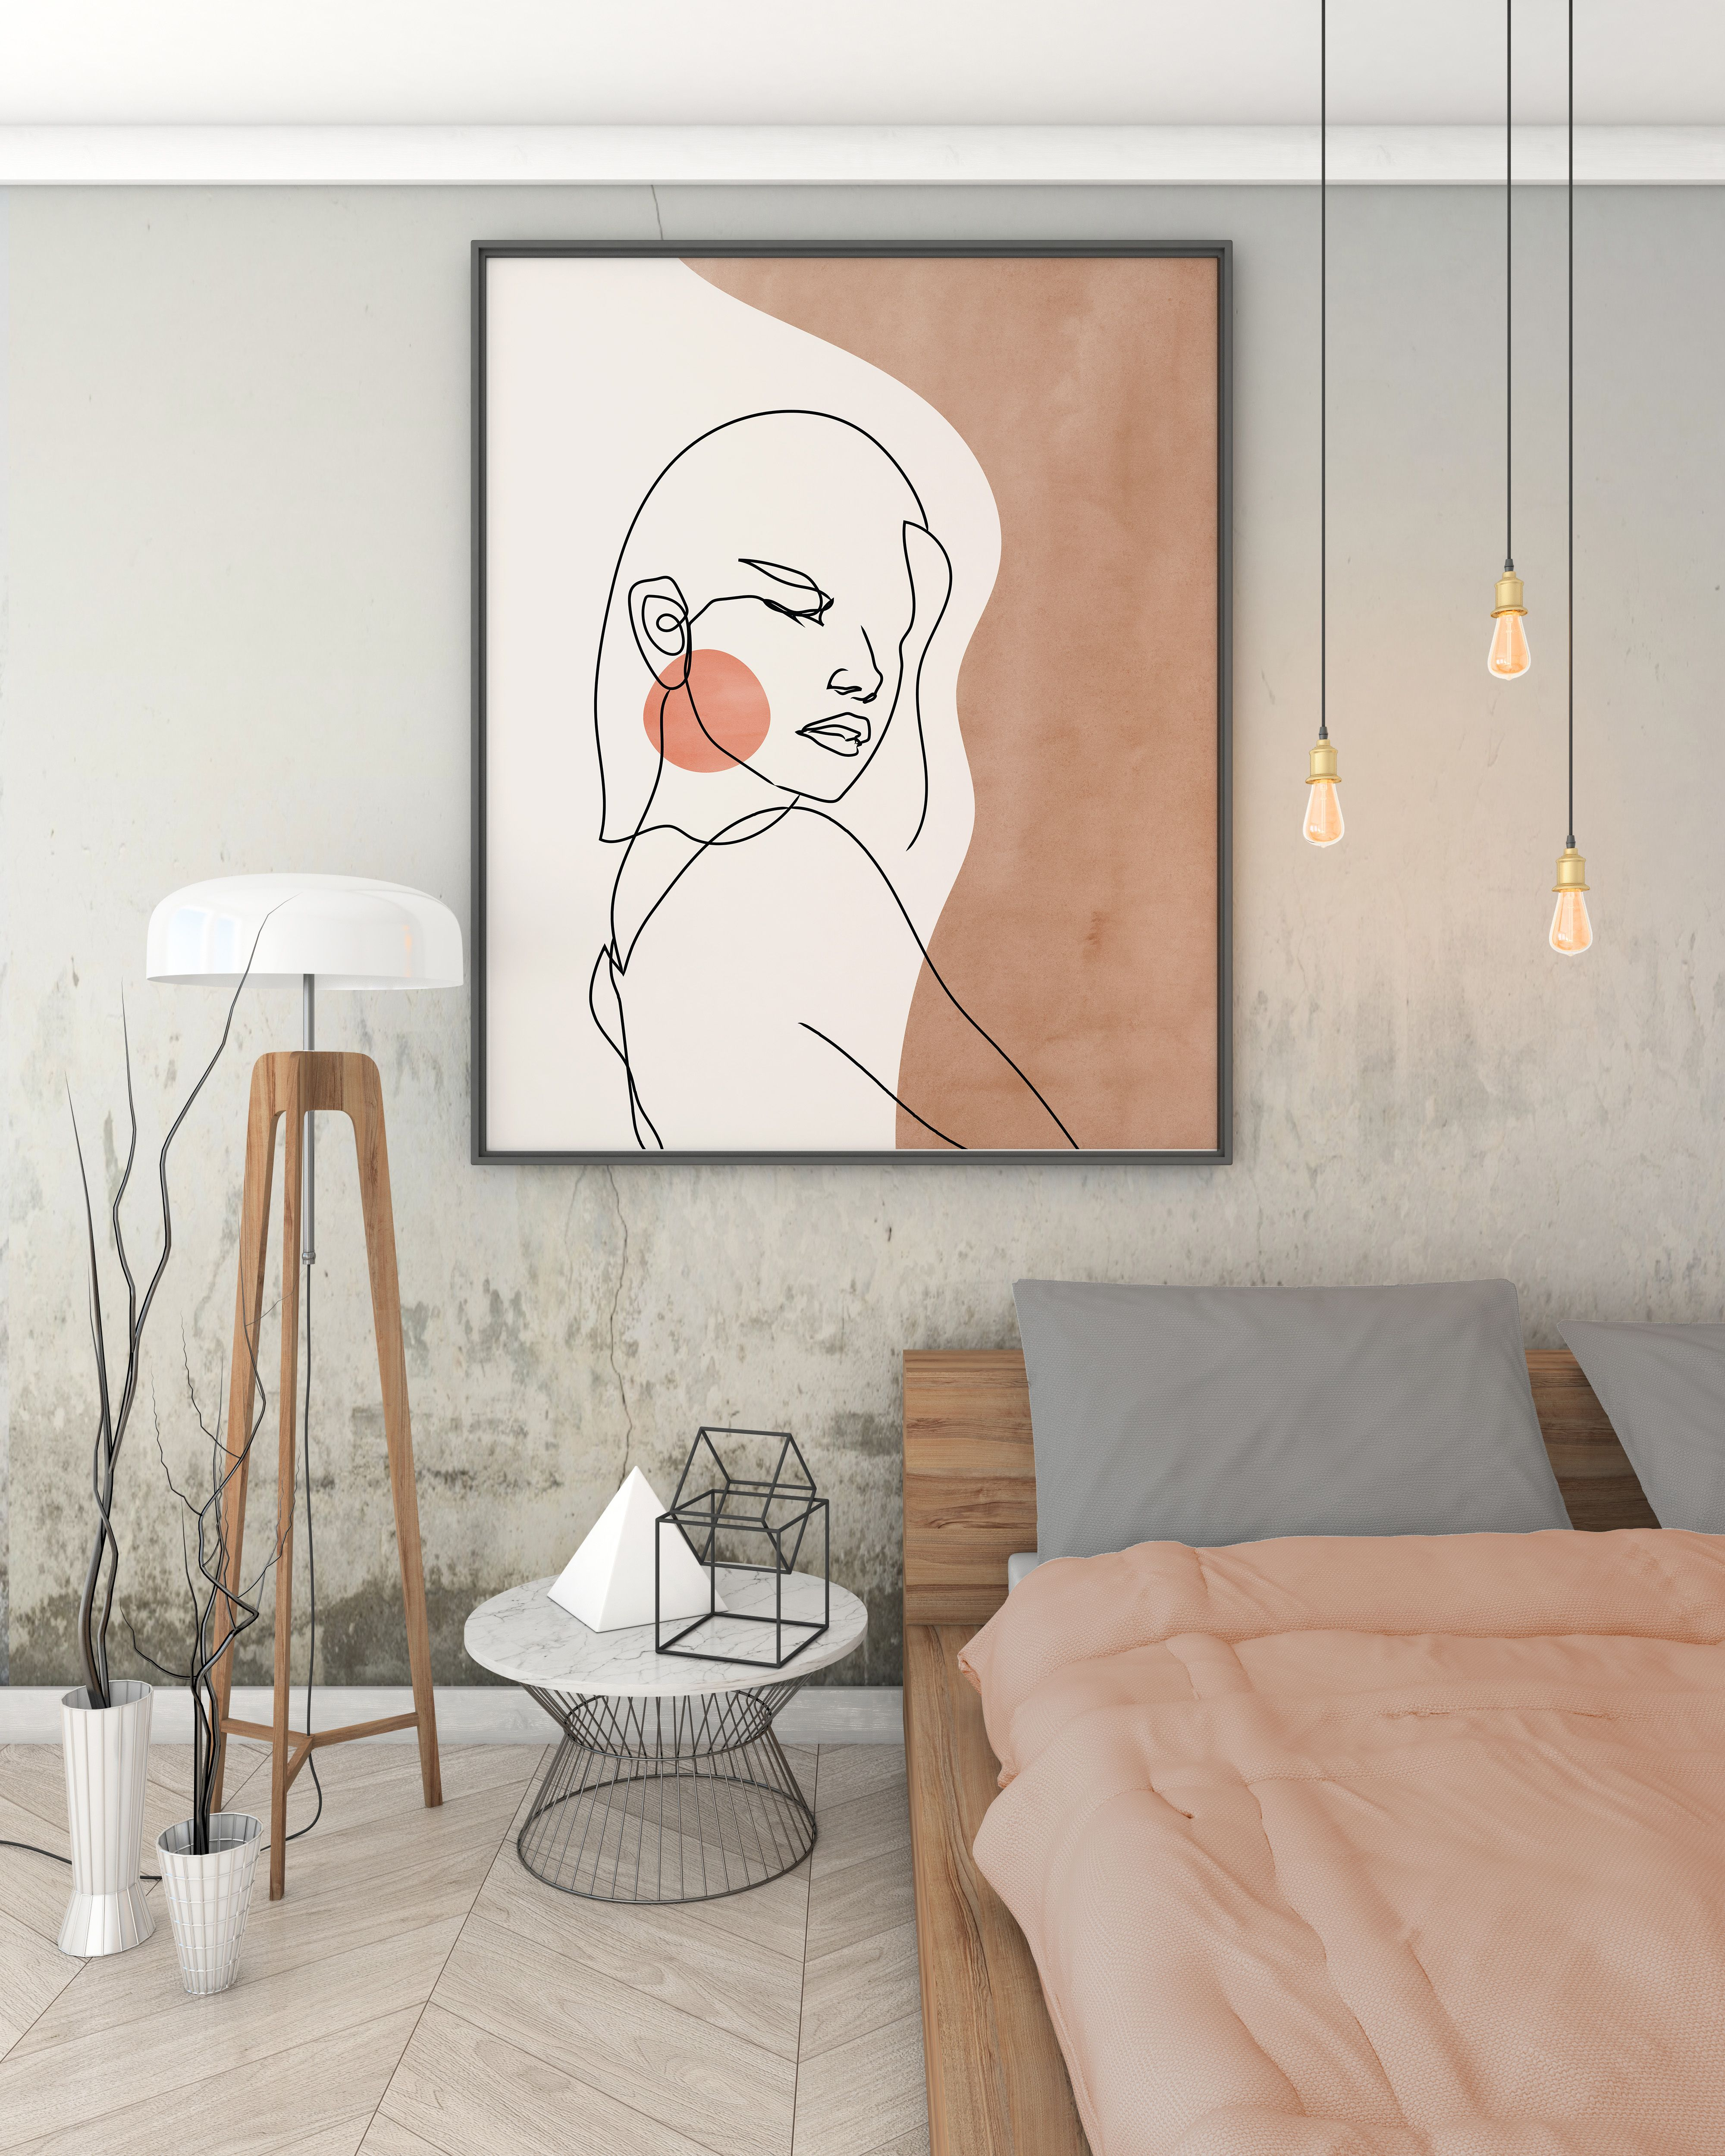 Abstract Face Line Art Print, Woman Face Single Line Drawing, Bohemian Neutral Colors Wall Art